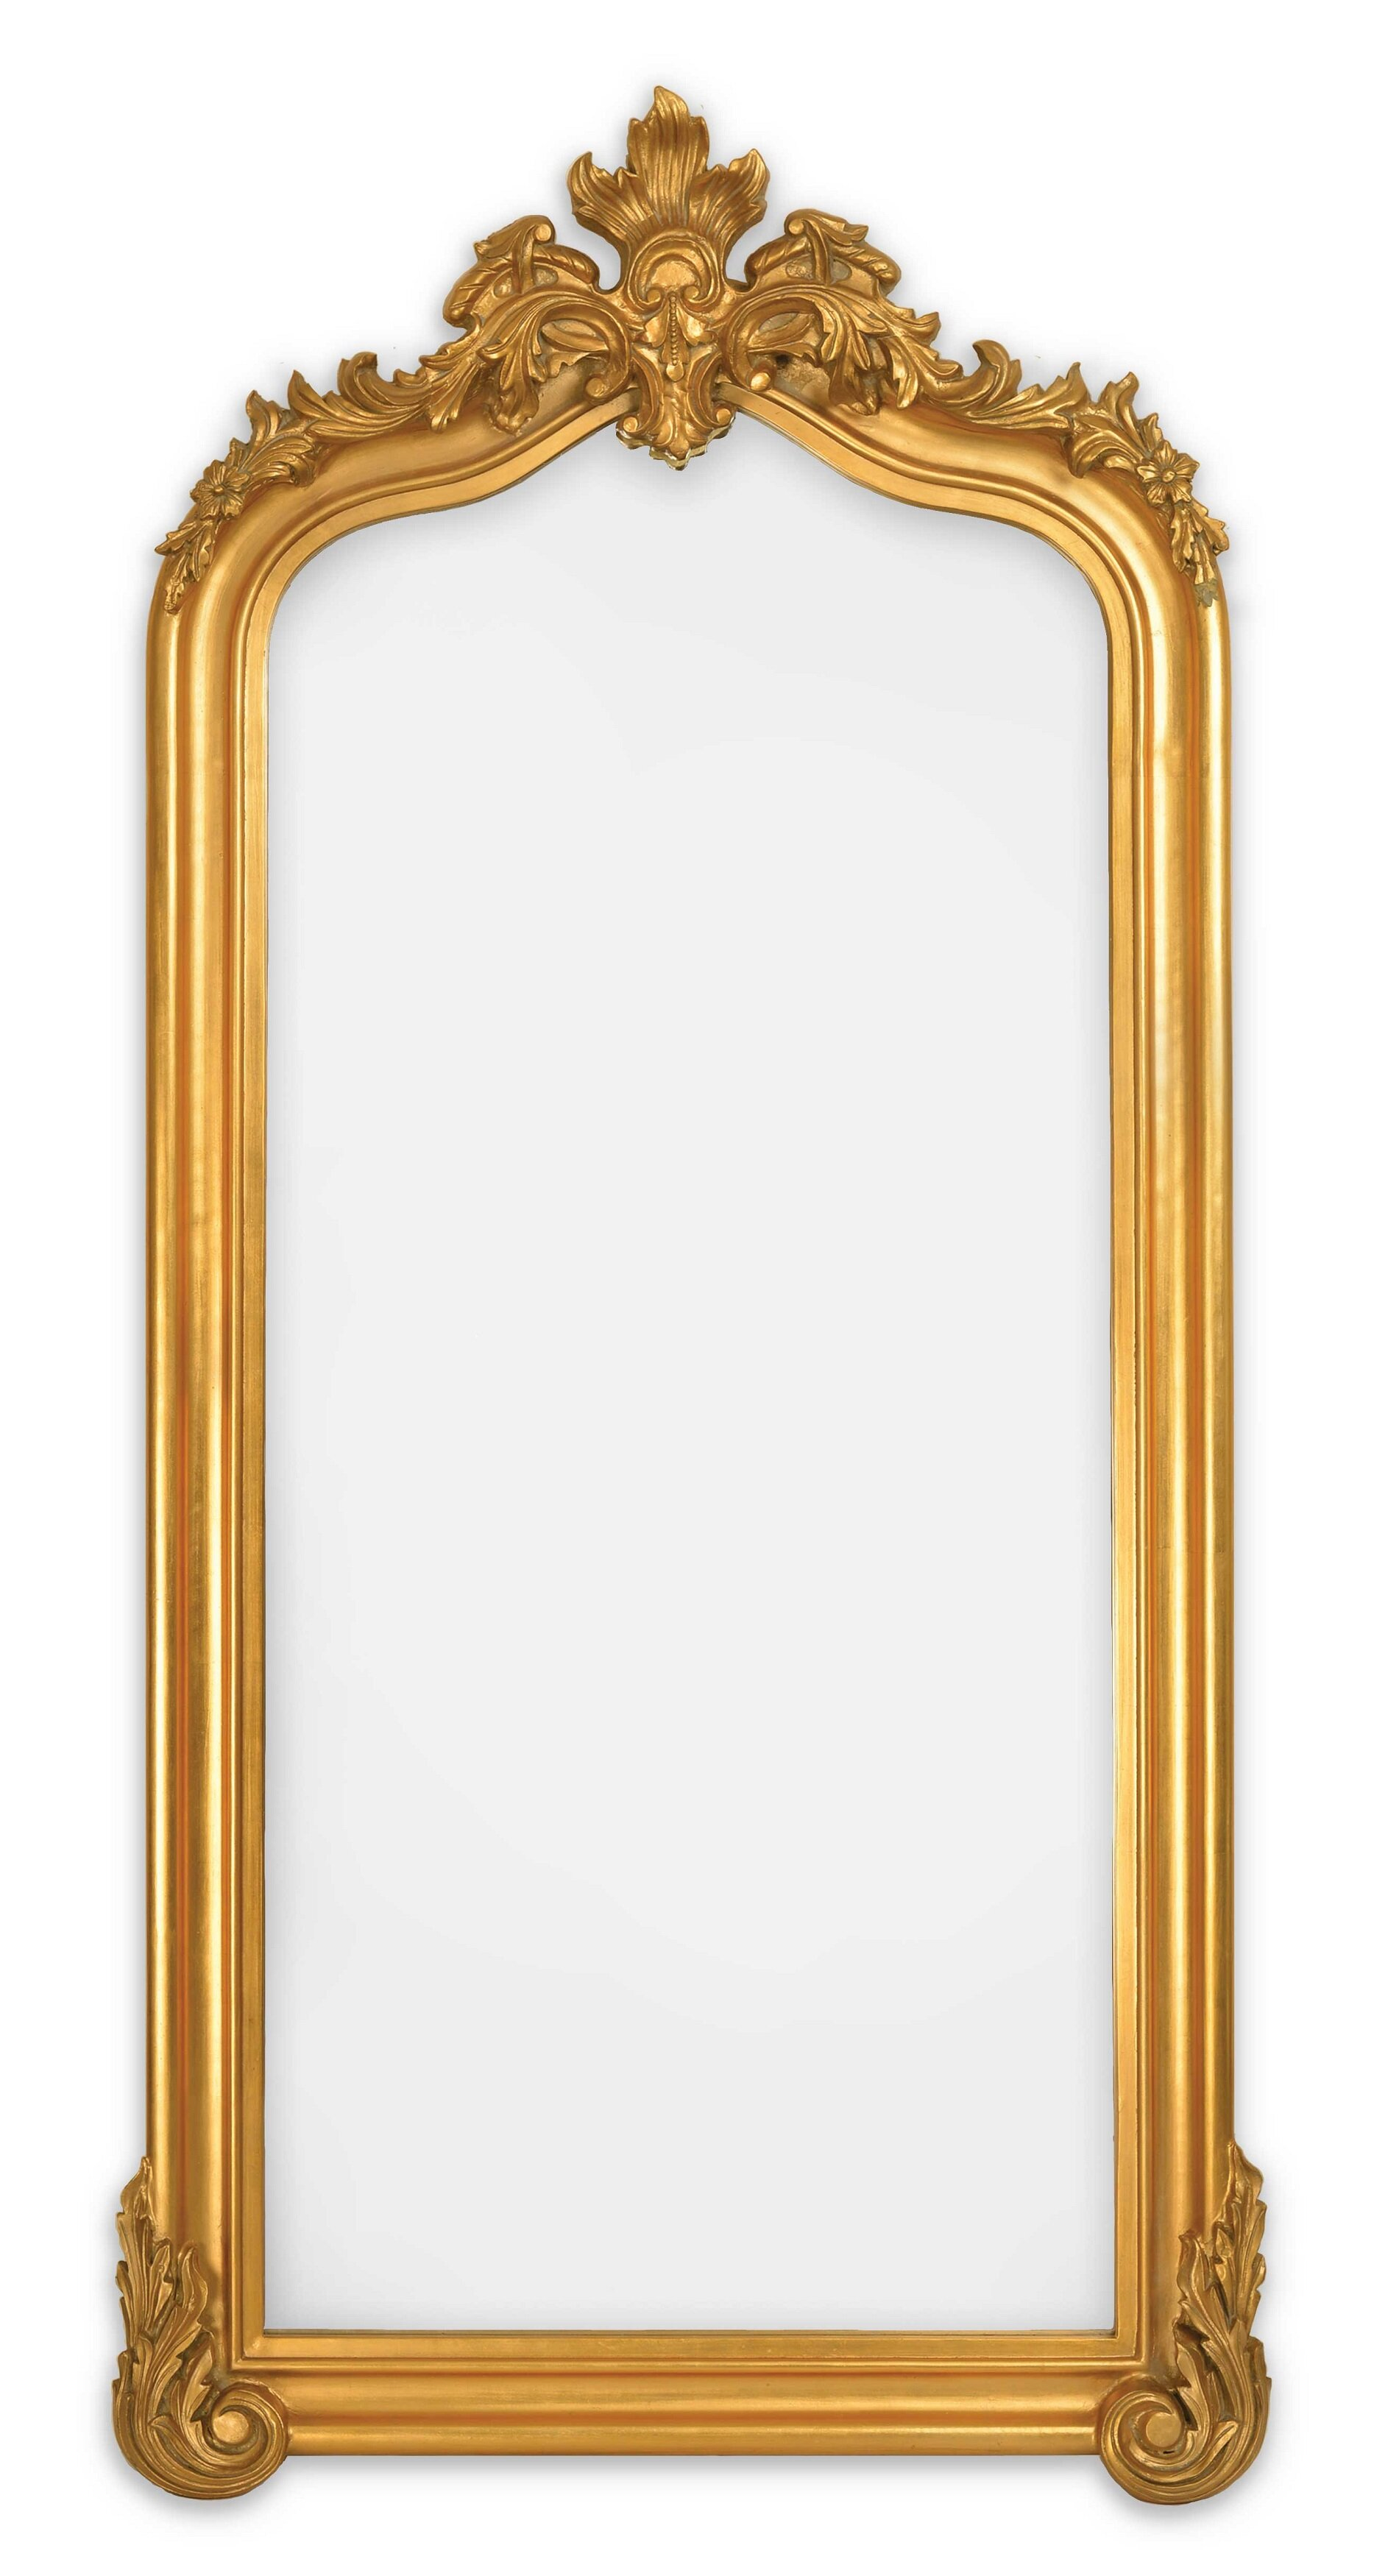 Selections By Chaumont Blenheim Traditional Beveled Full Length Mirror Reviews Perigold